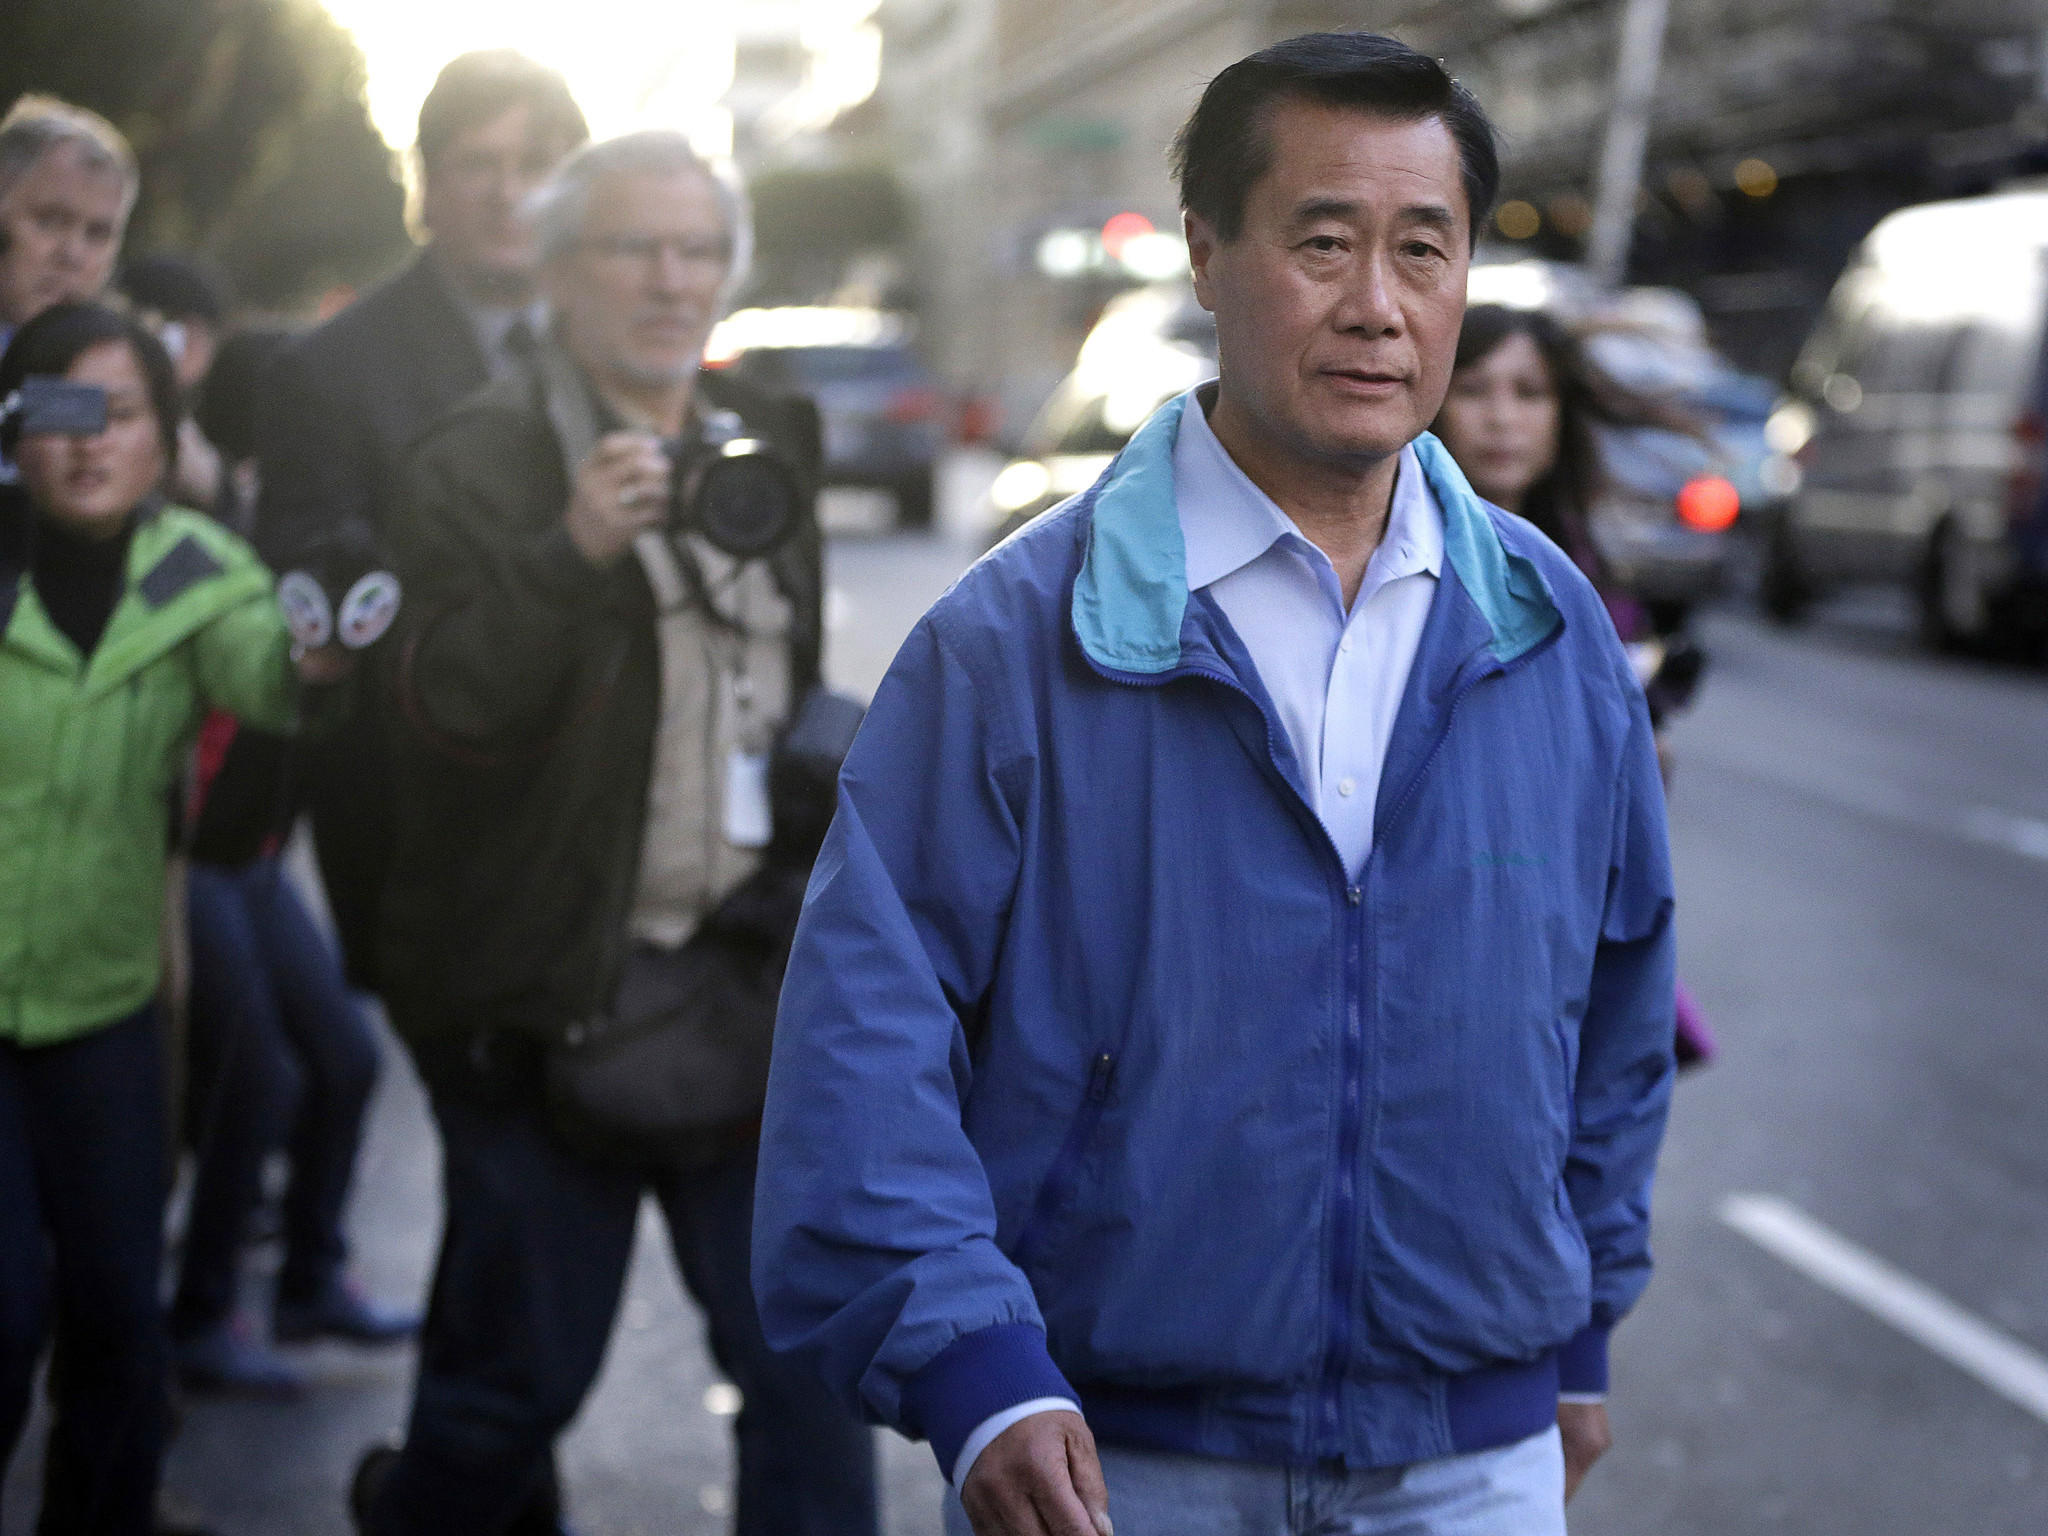 Sen. Leland Yee (D-San Francisco) leaves the Federal Building in San Francisco on March 26. A new poll has found that Yee's arrest has damaged the Legislature's approval ratings.